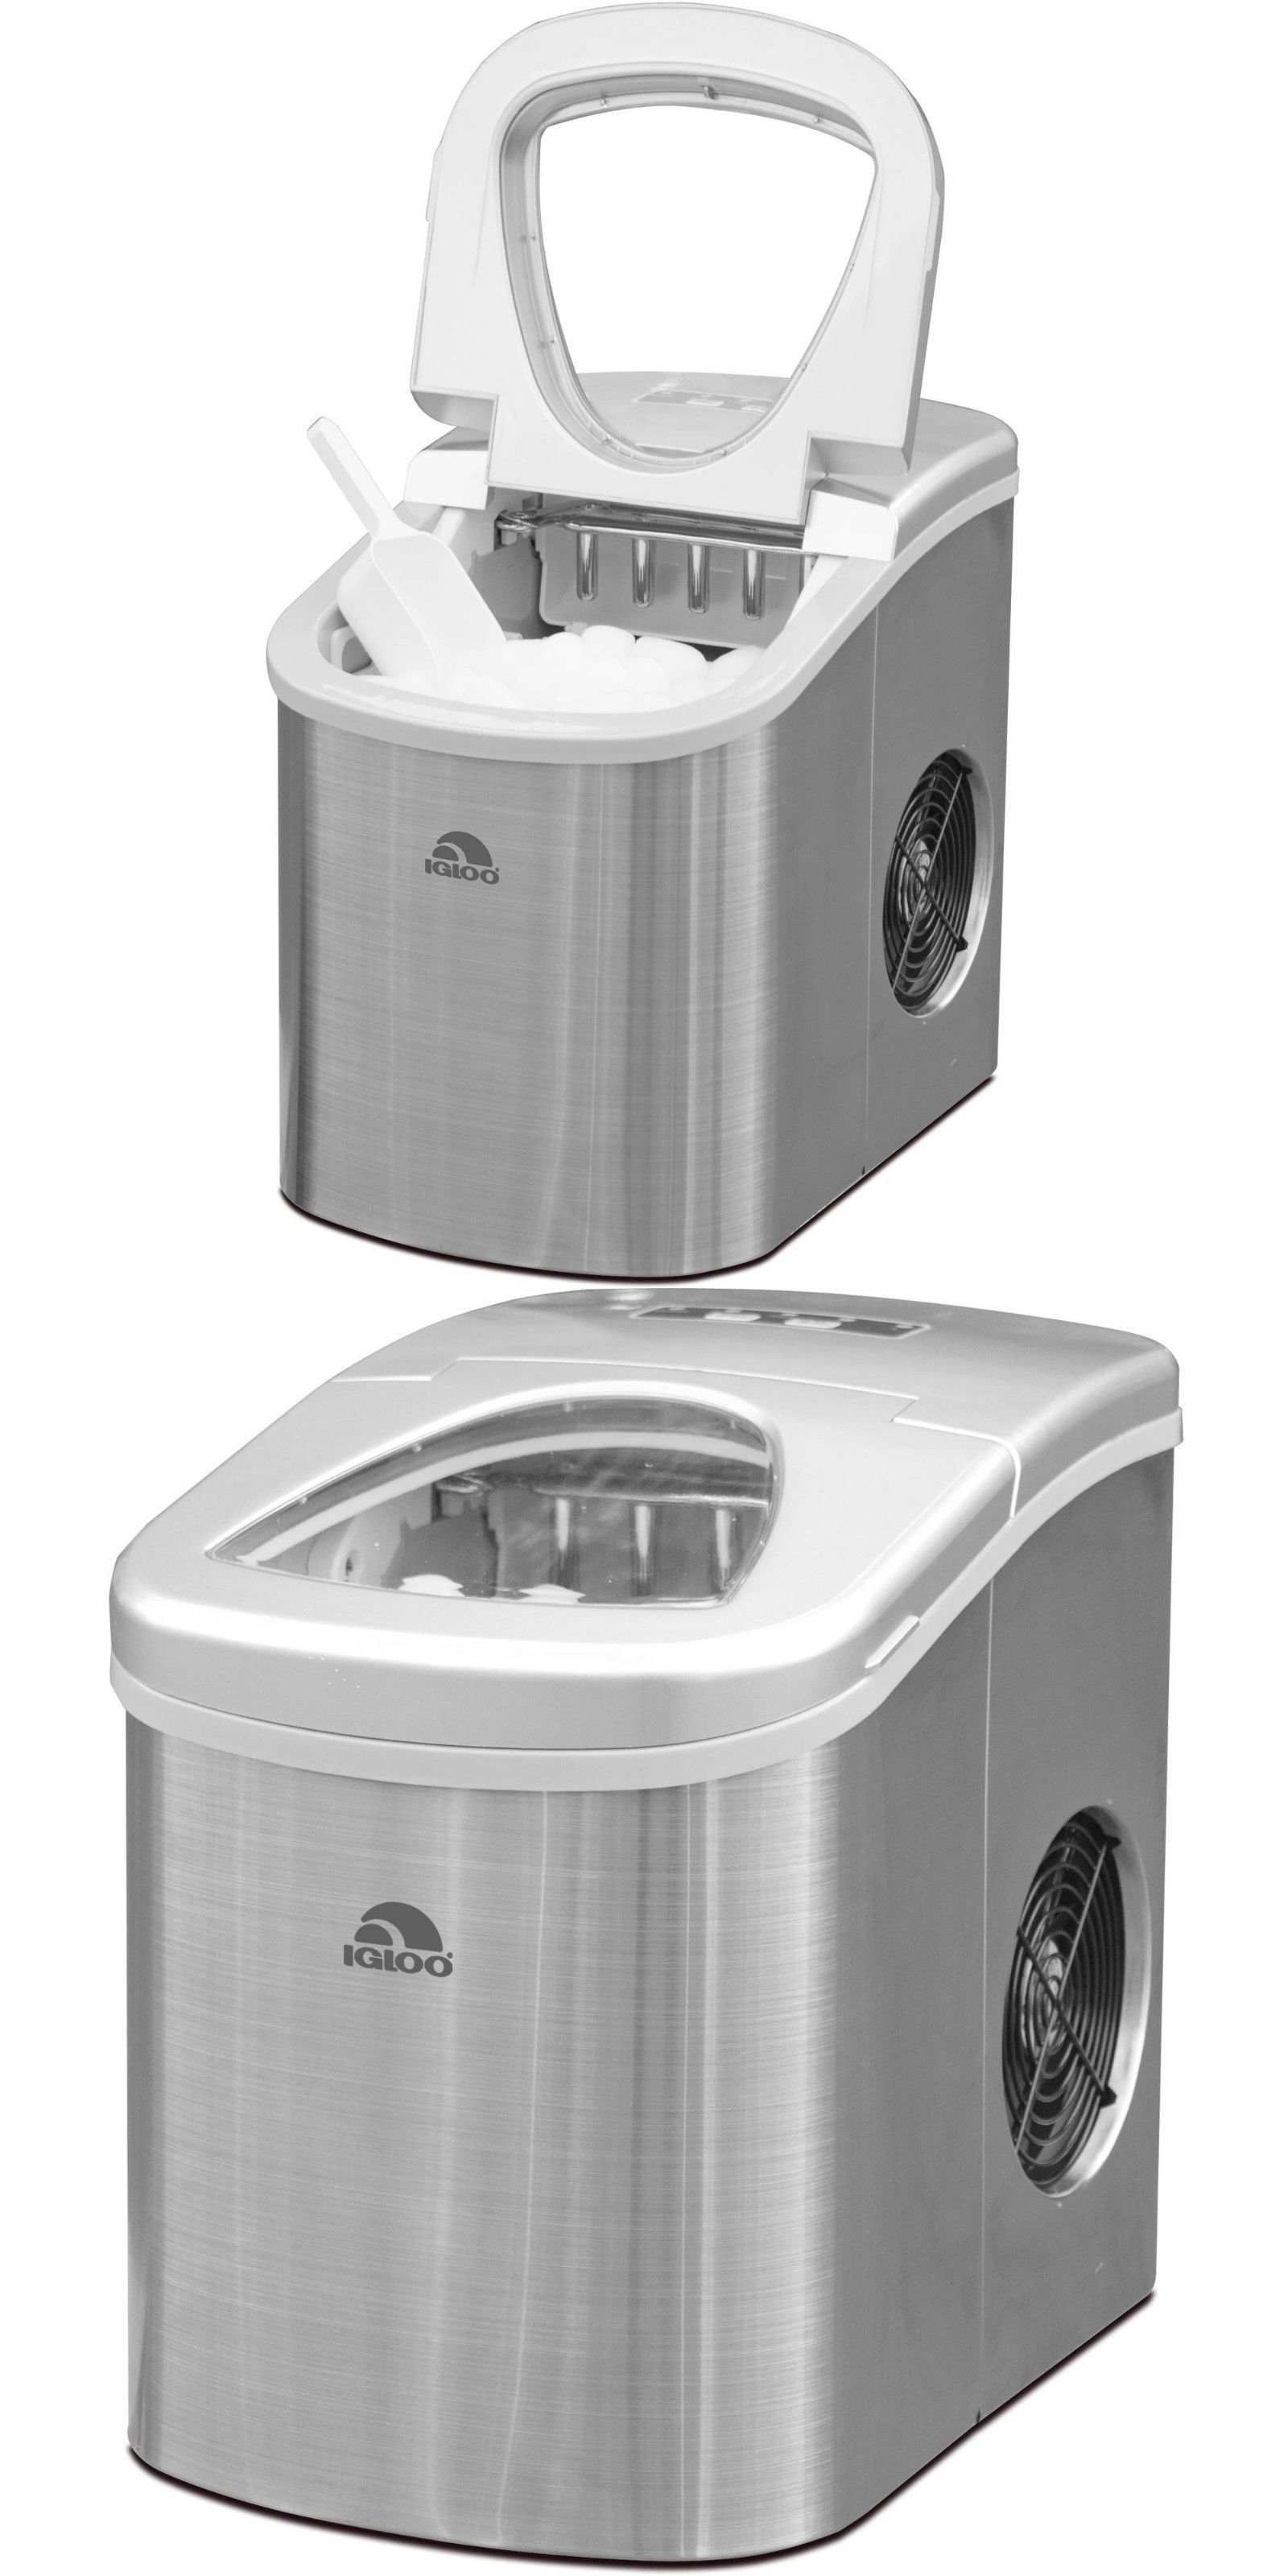 Countertop Ice Makers 122929 Compact Ice Maker Stainless Steel Makes 26lbs In 24 Hrs Ice Size Settings Buy It Now Only 114 2 Ice Maker Stainless Steel